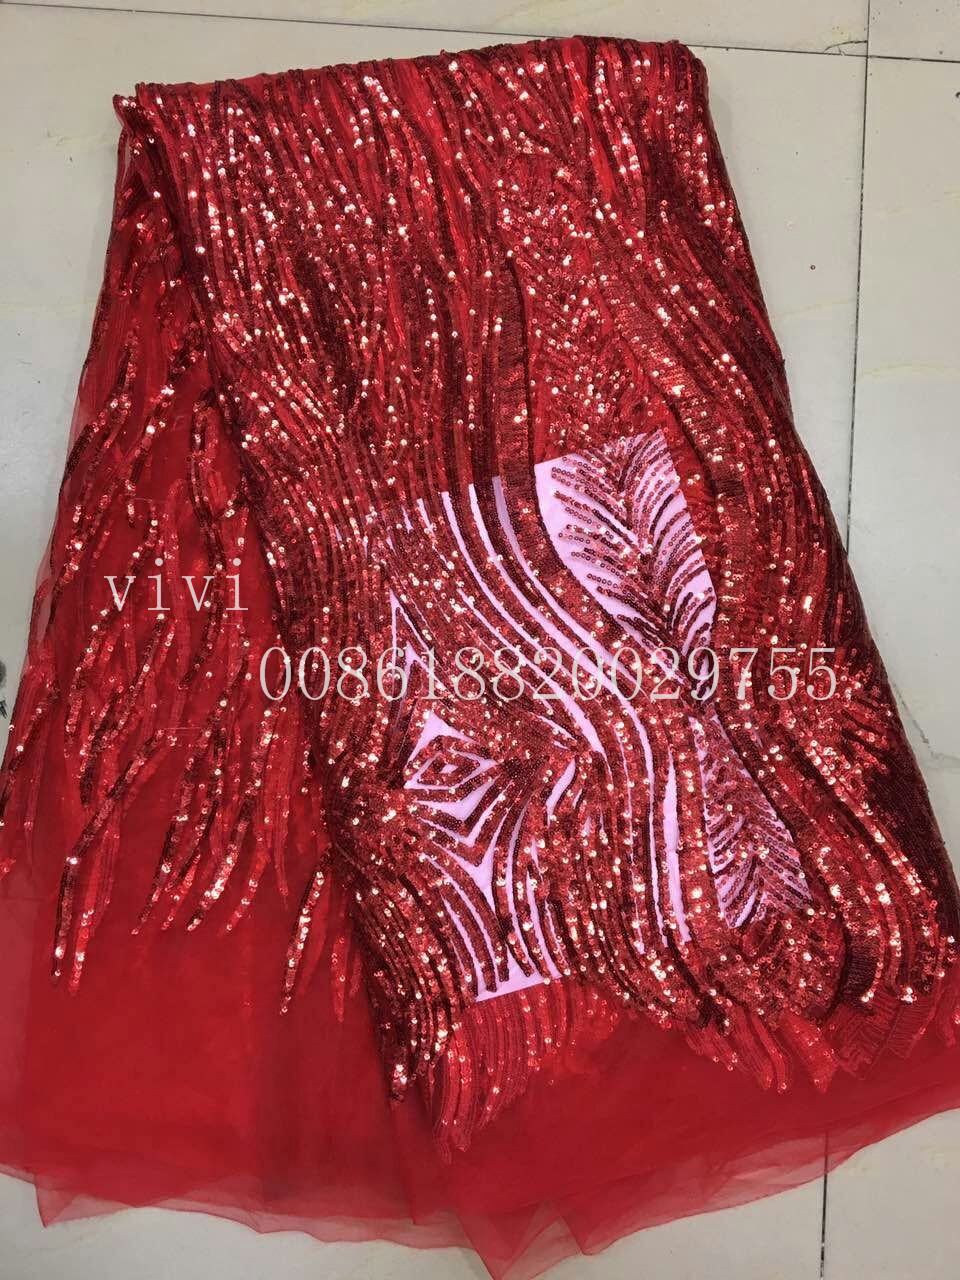 Buy red netting and get free shipping on AliExpress.com